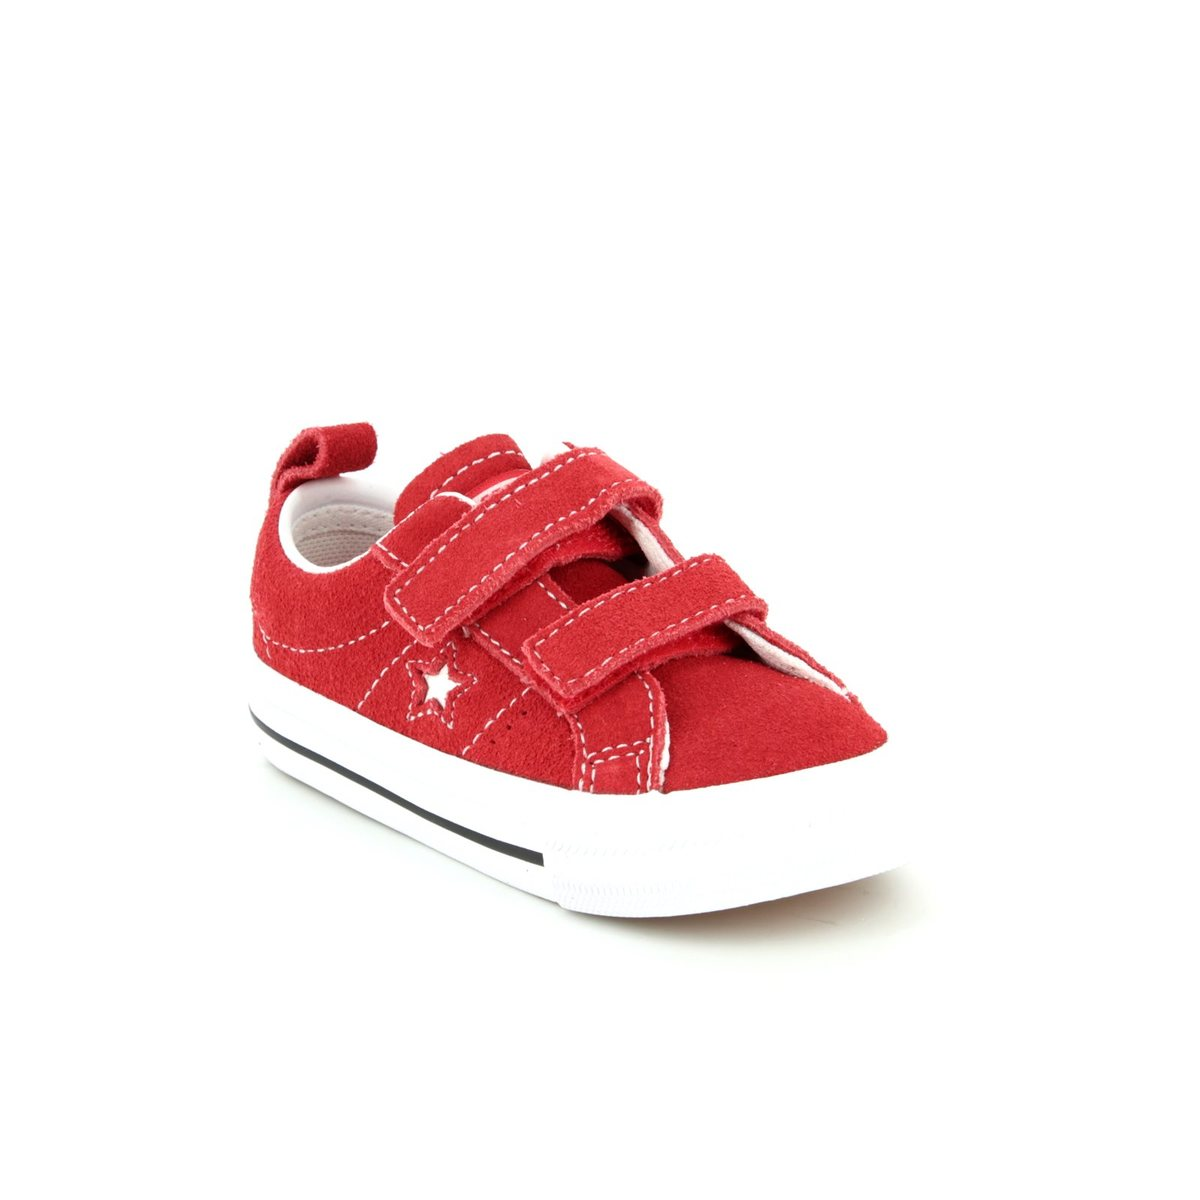 951ed7a741ec84 Converse Trainers - Red multi - 756133C 600 One Star 2V OX Velcro